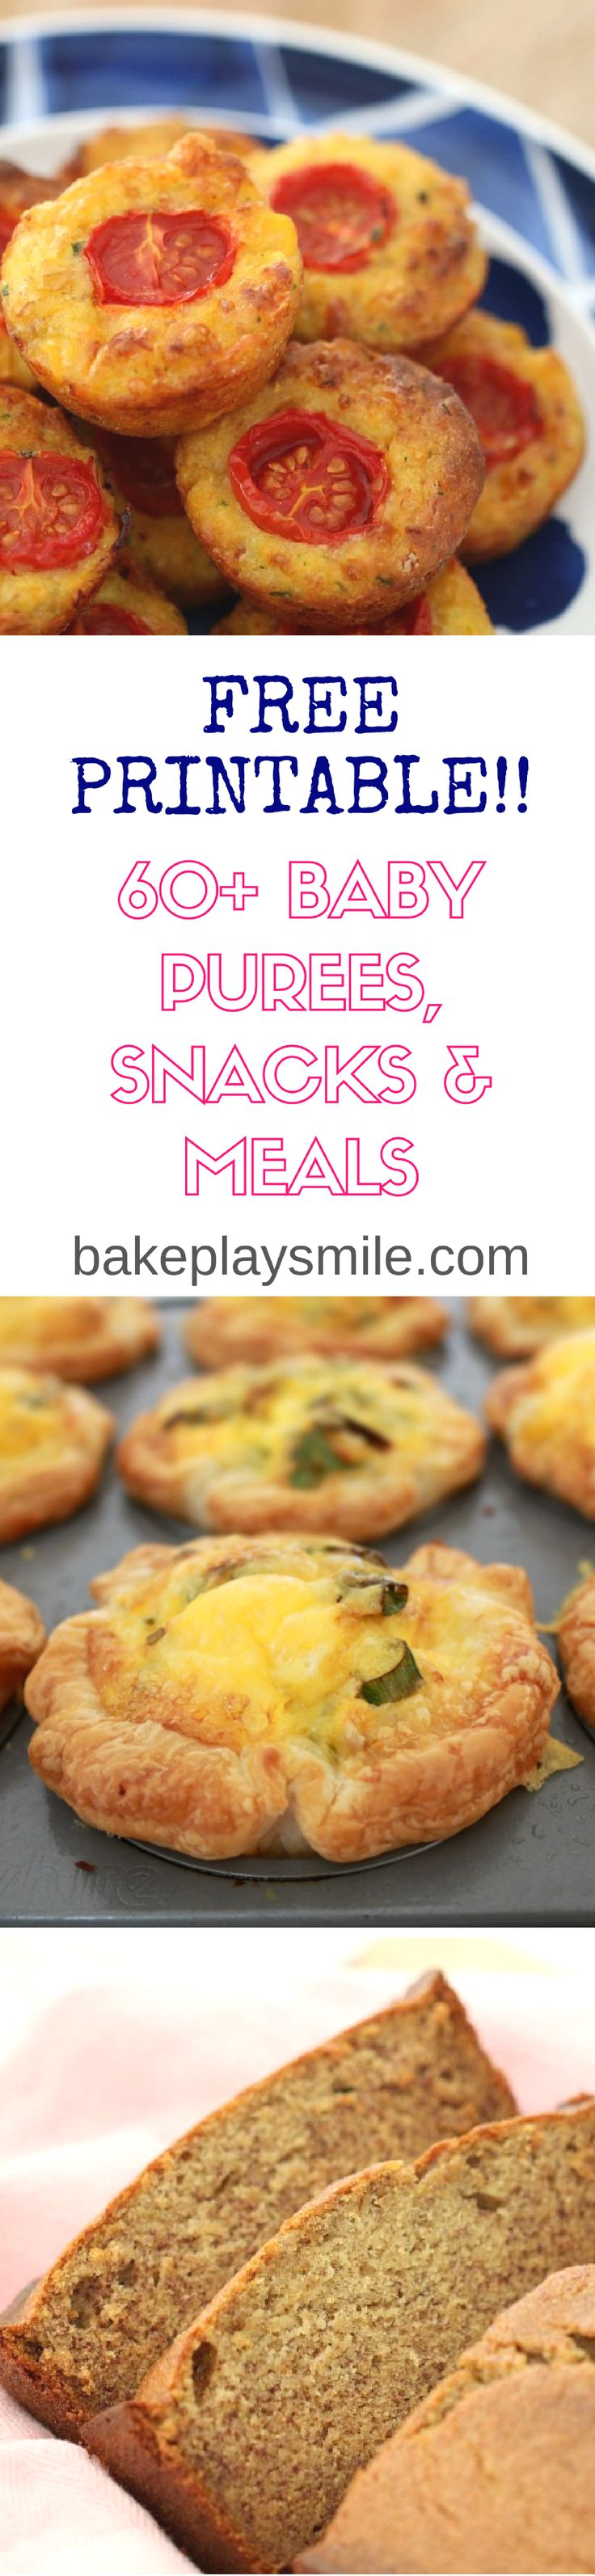 60+ baby purees, snacks & meals... FREE PRINTABLE!!   A free printable with over 60 delicious baby purees, snacks & meals! Perfect for a new mumma or anyone in need of some baby food inspiration!  http://bakeplaysmile.com/baby-purees-snacks-meals/